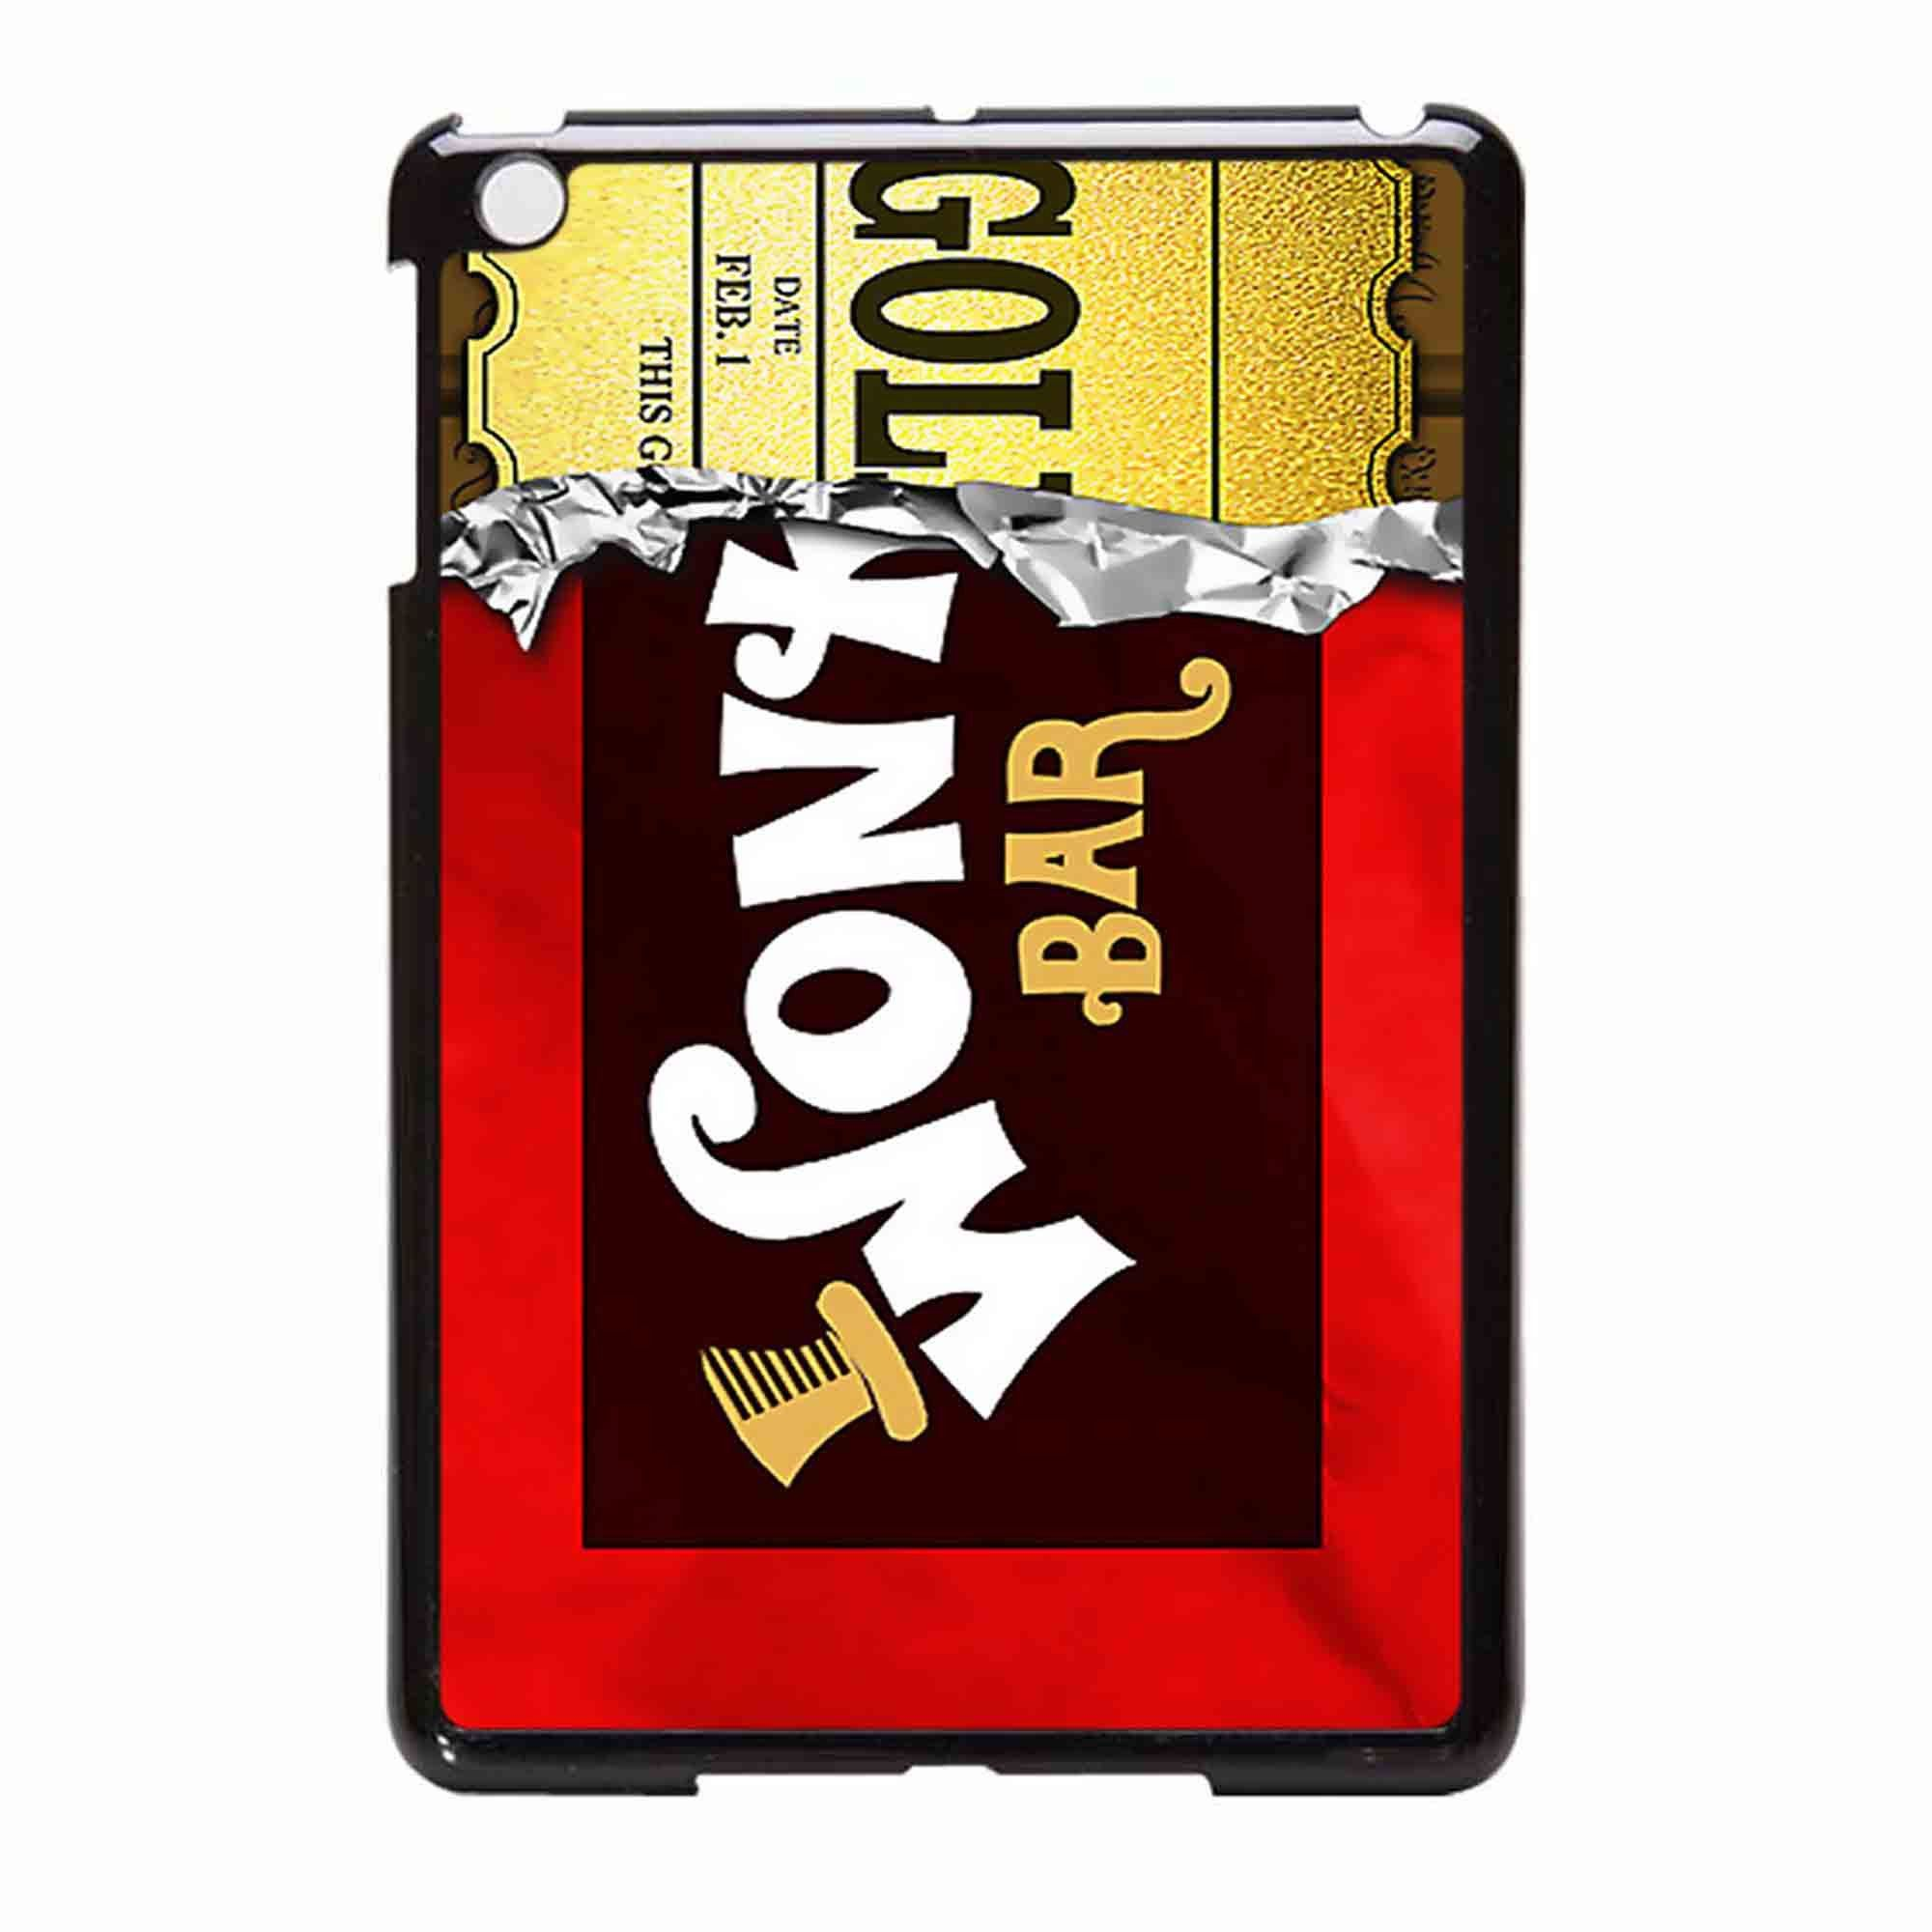 Wonka Chocolate iPad Mini Case | Stuff | Pinterest | Wonka ...